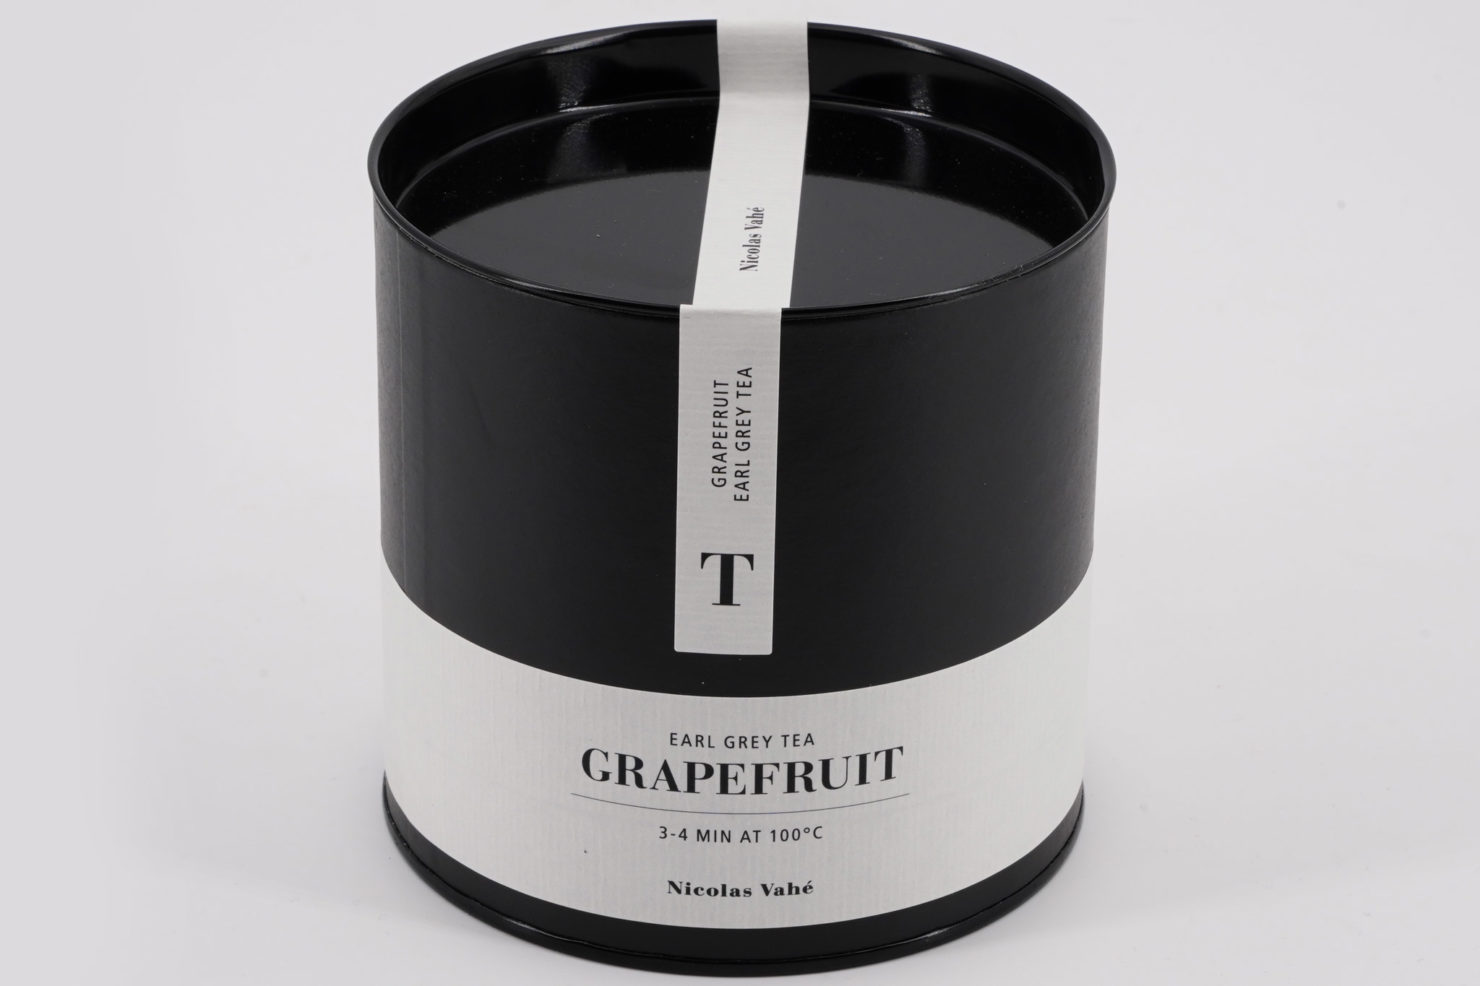 EARL GREY TEA, GRAPEFRUIT 100 GR